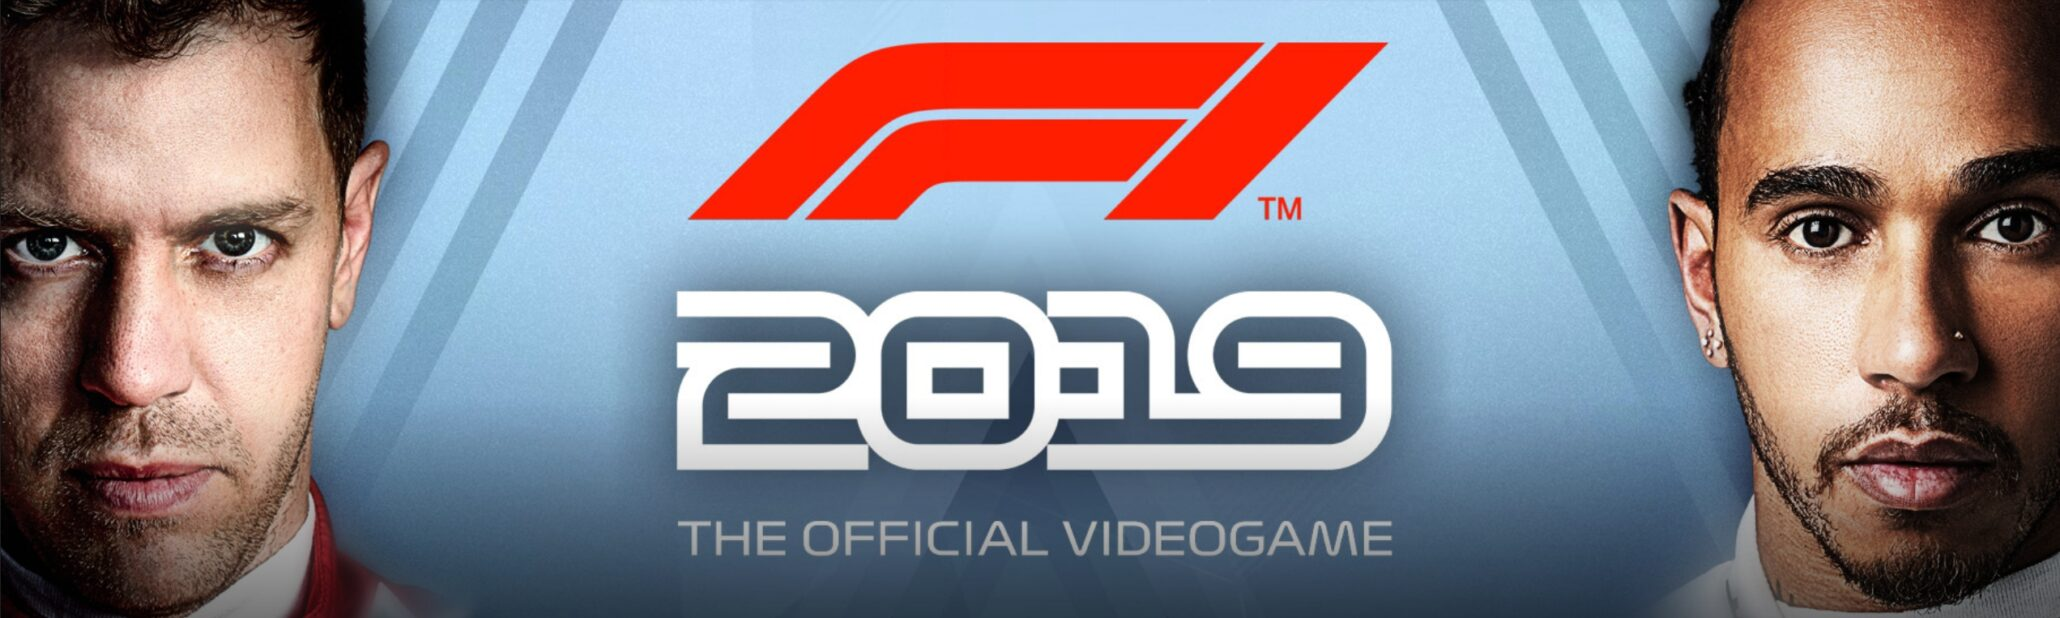 F1 2019 Preview - Bringing the Legends to Life